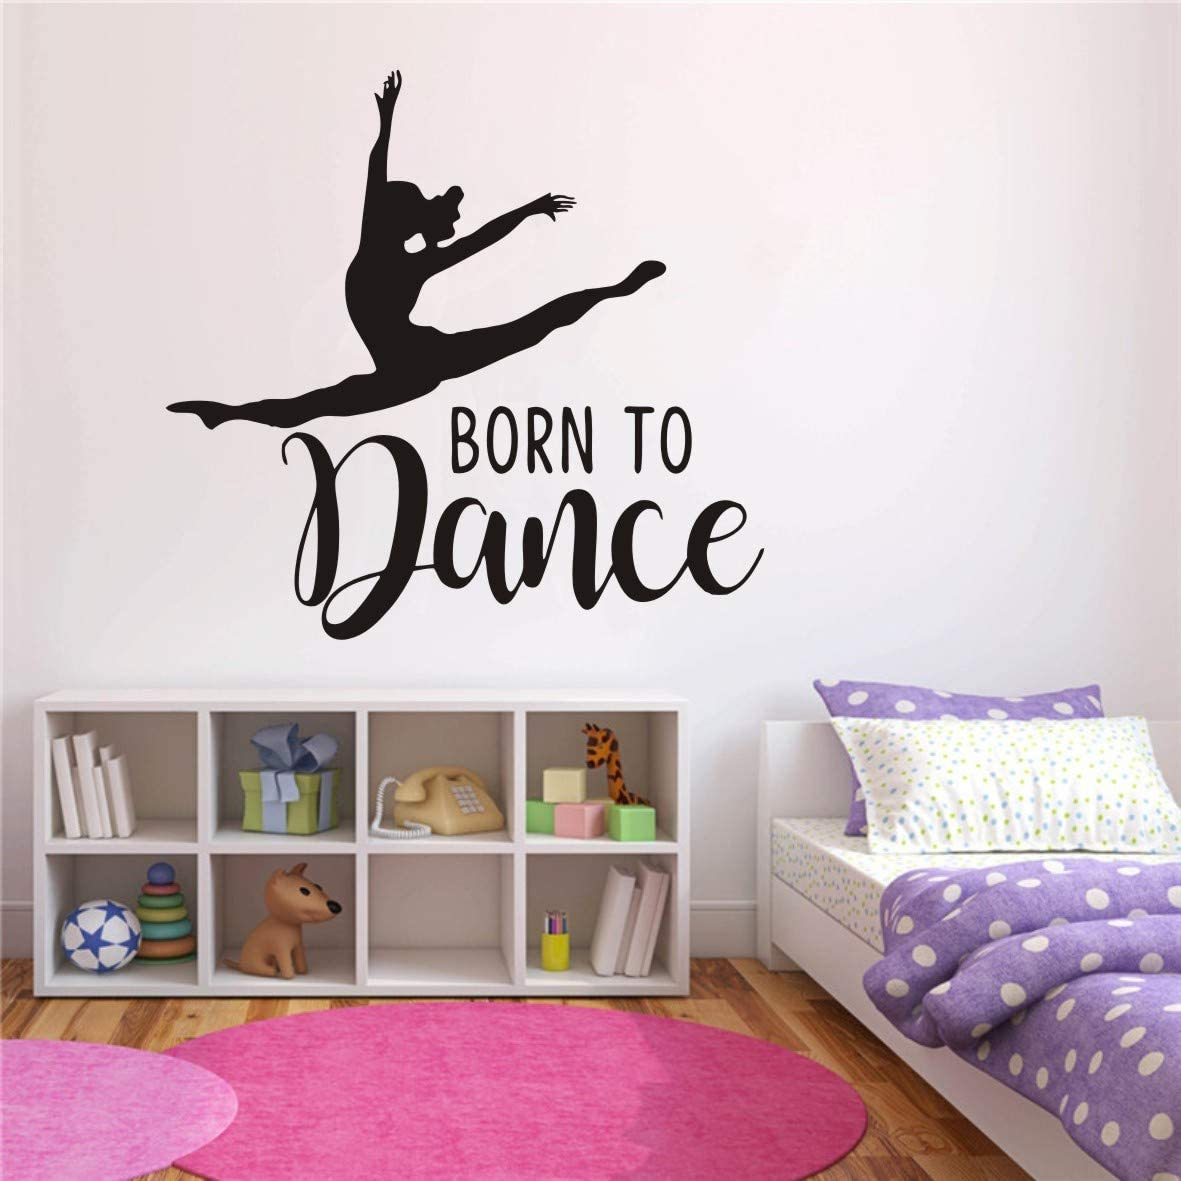 Home Decoration Dance Wall Sticker Art Removable Girl Dancing Born to Dance Quotes Wall Decor Sticker Girl Bedroom Dance Room Wall Mural Poster QQ22(Black Finish Size 70x65cm)